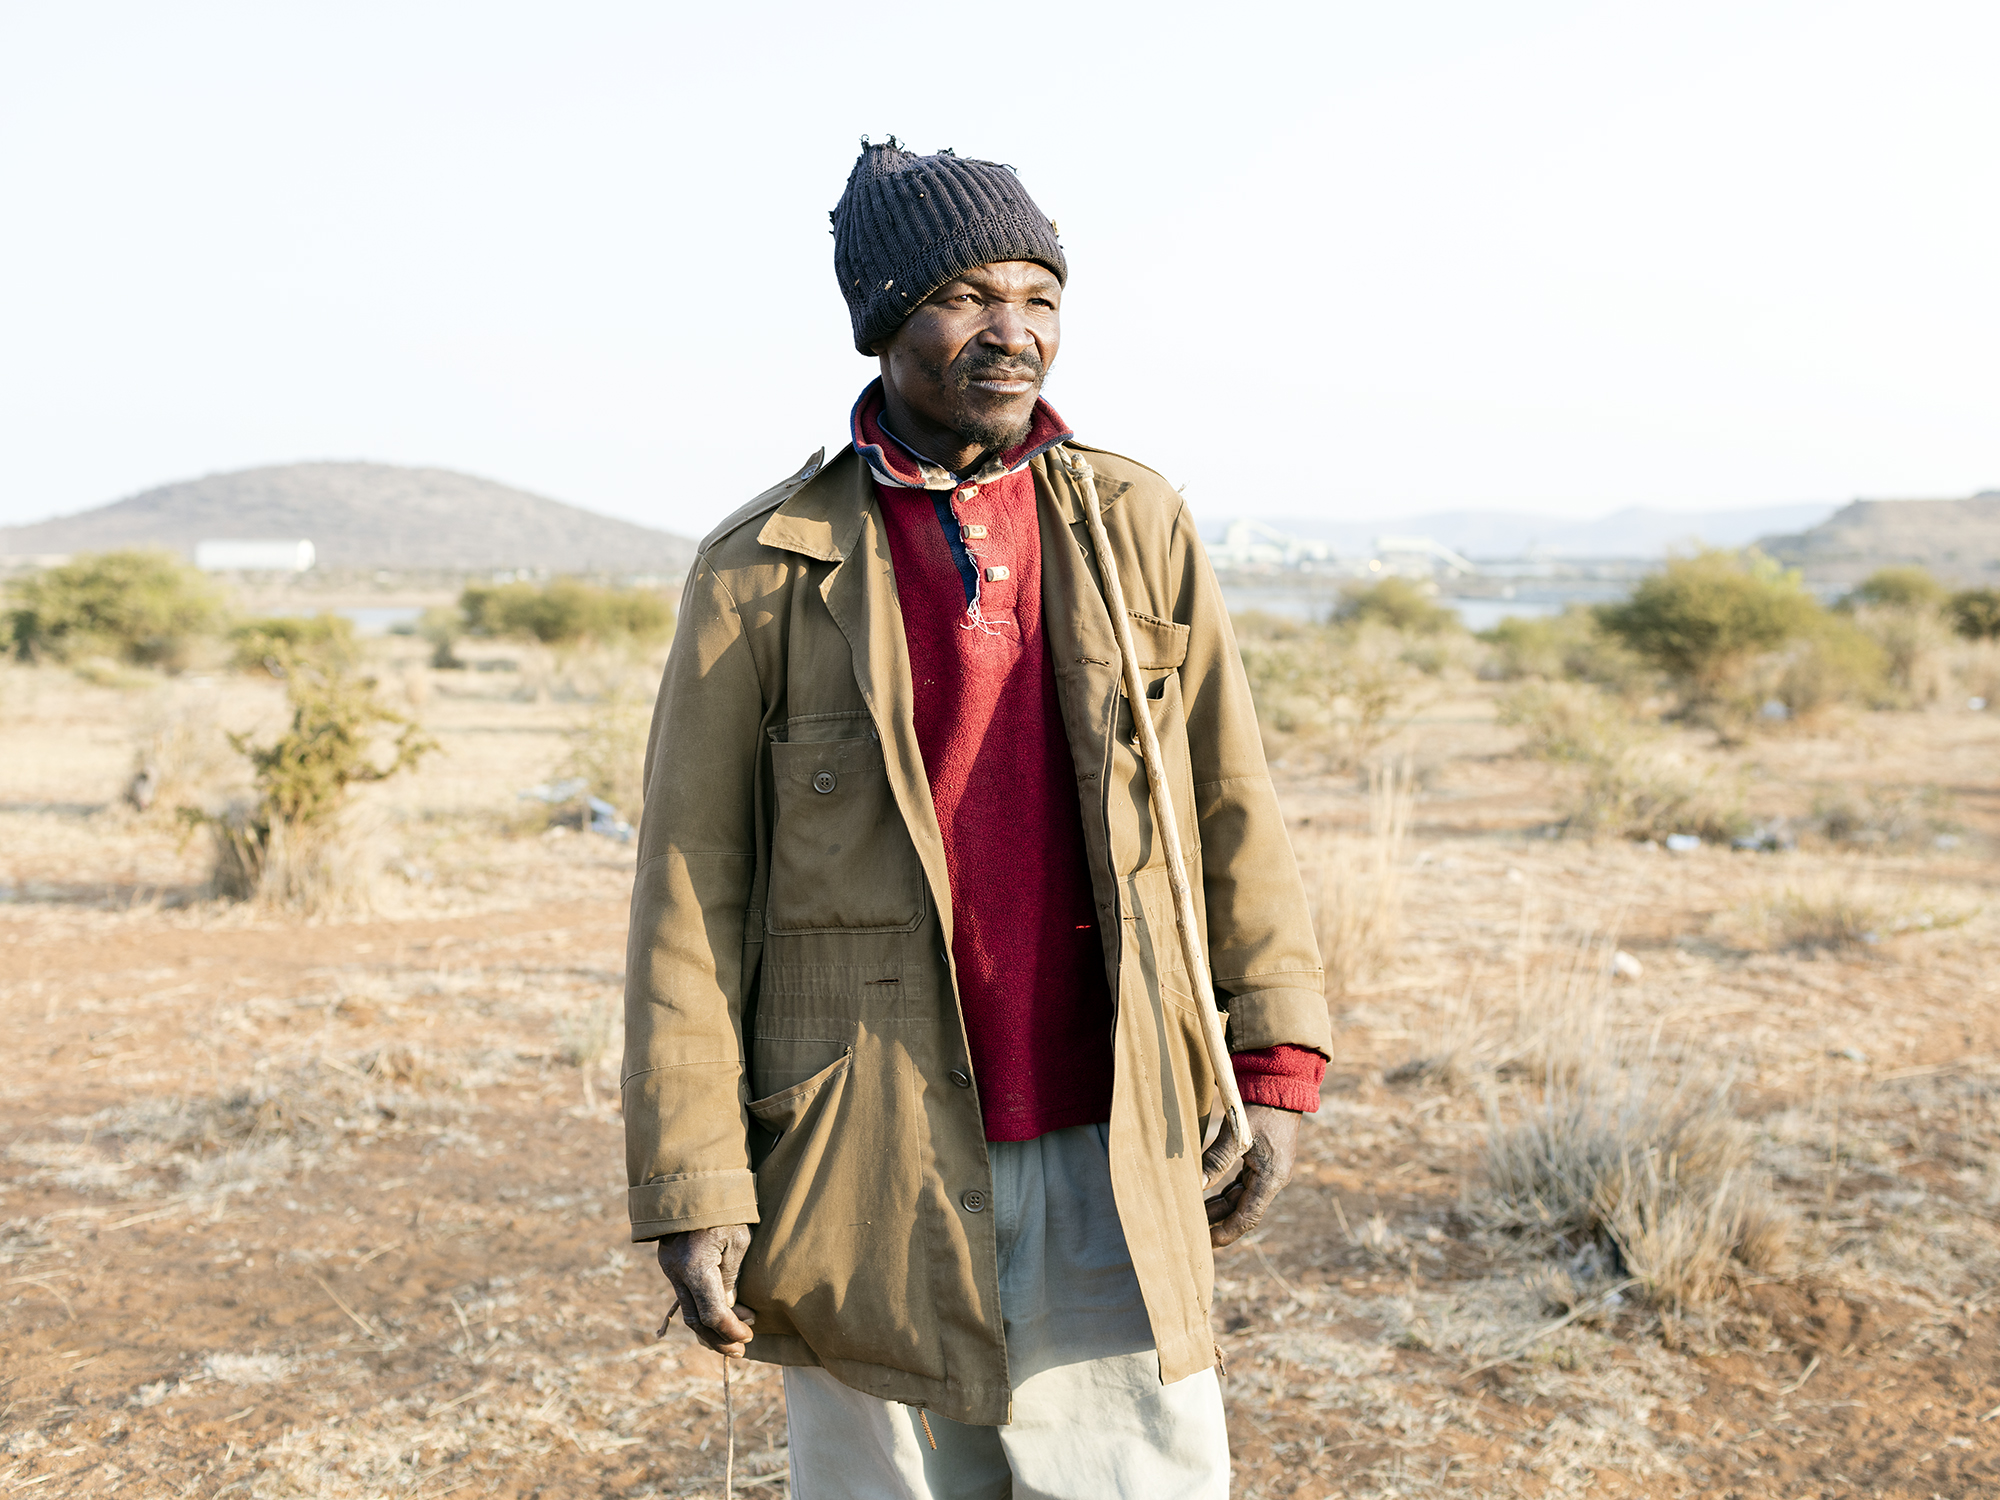 William Nkuna, 51, head herdsman in the community of Ga-Molekane Village, Mapela, Limpopo, Northern Limb